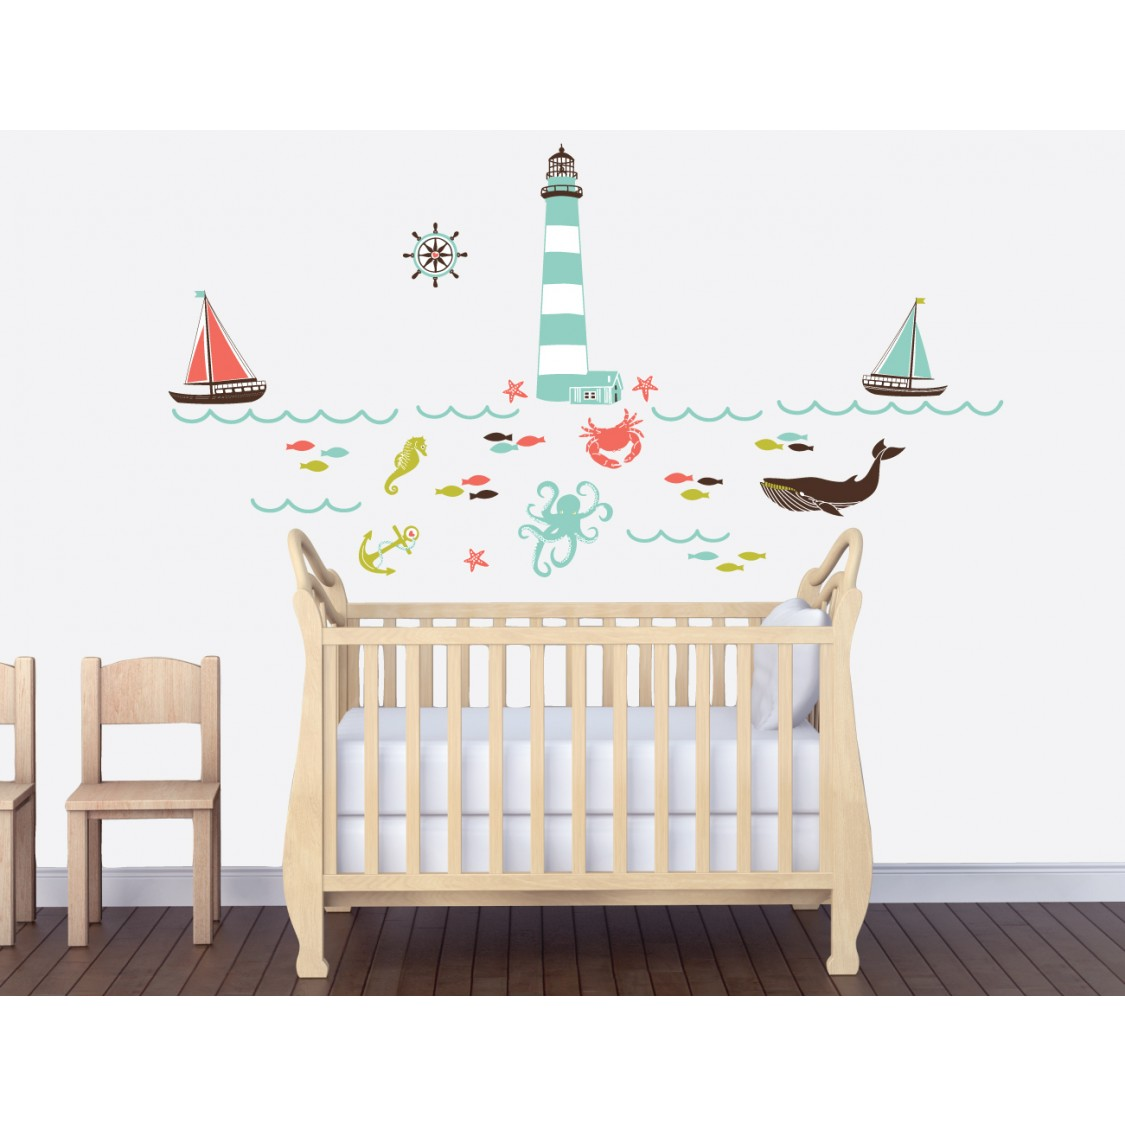 Wall Decals For Bedrooms With Marine Decals For Nursery or Baby Room